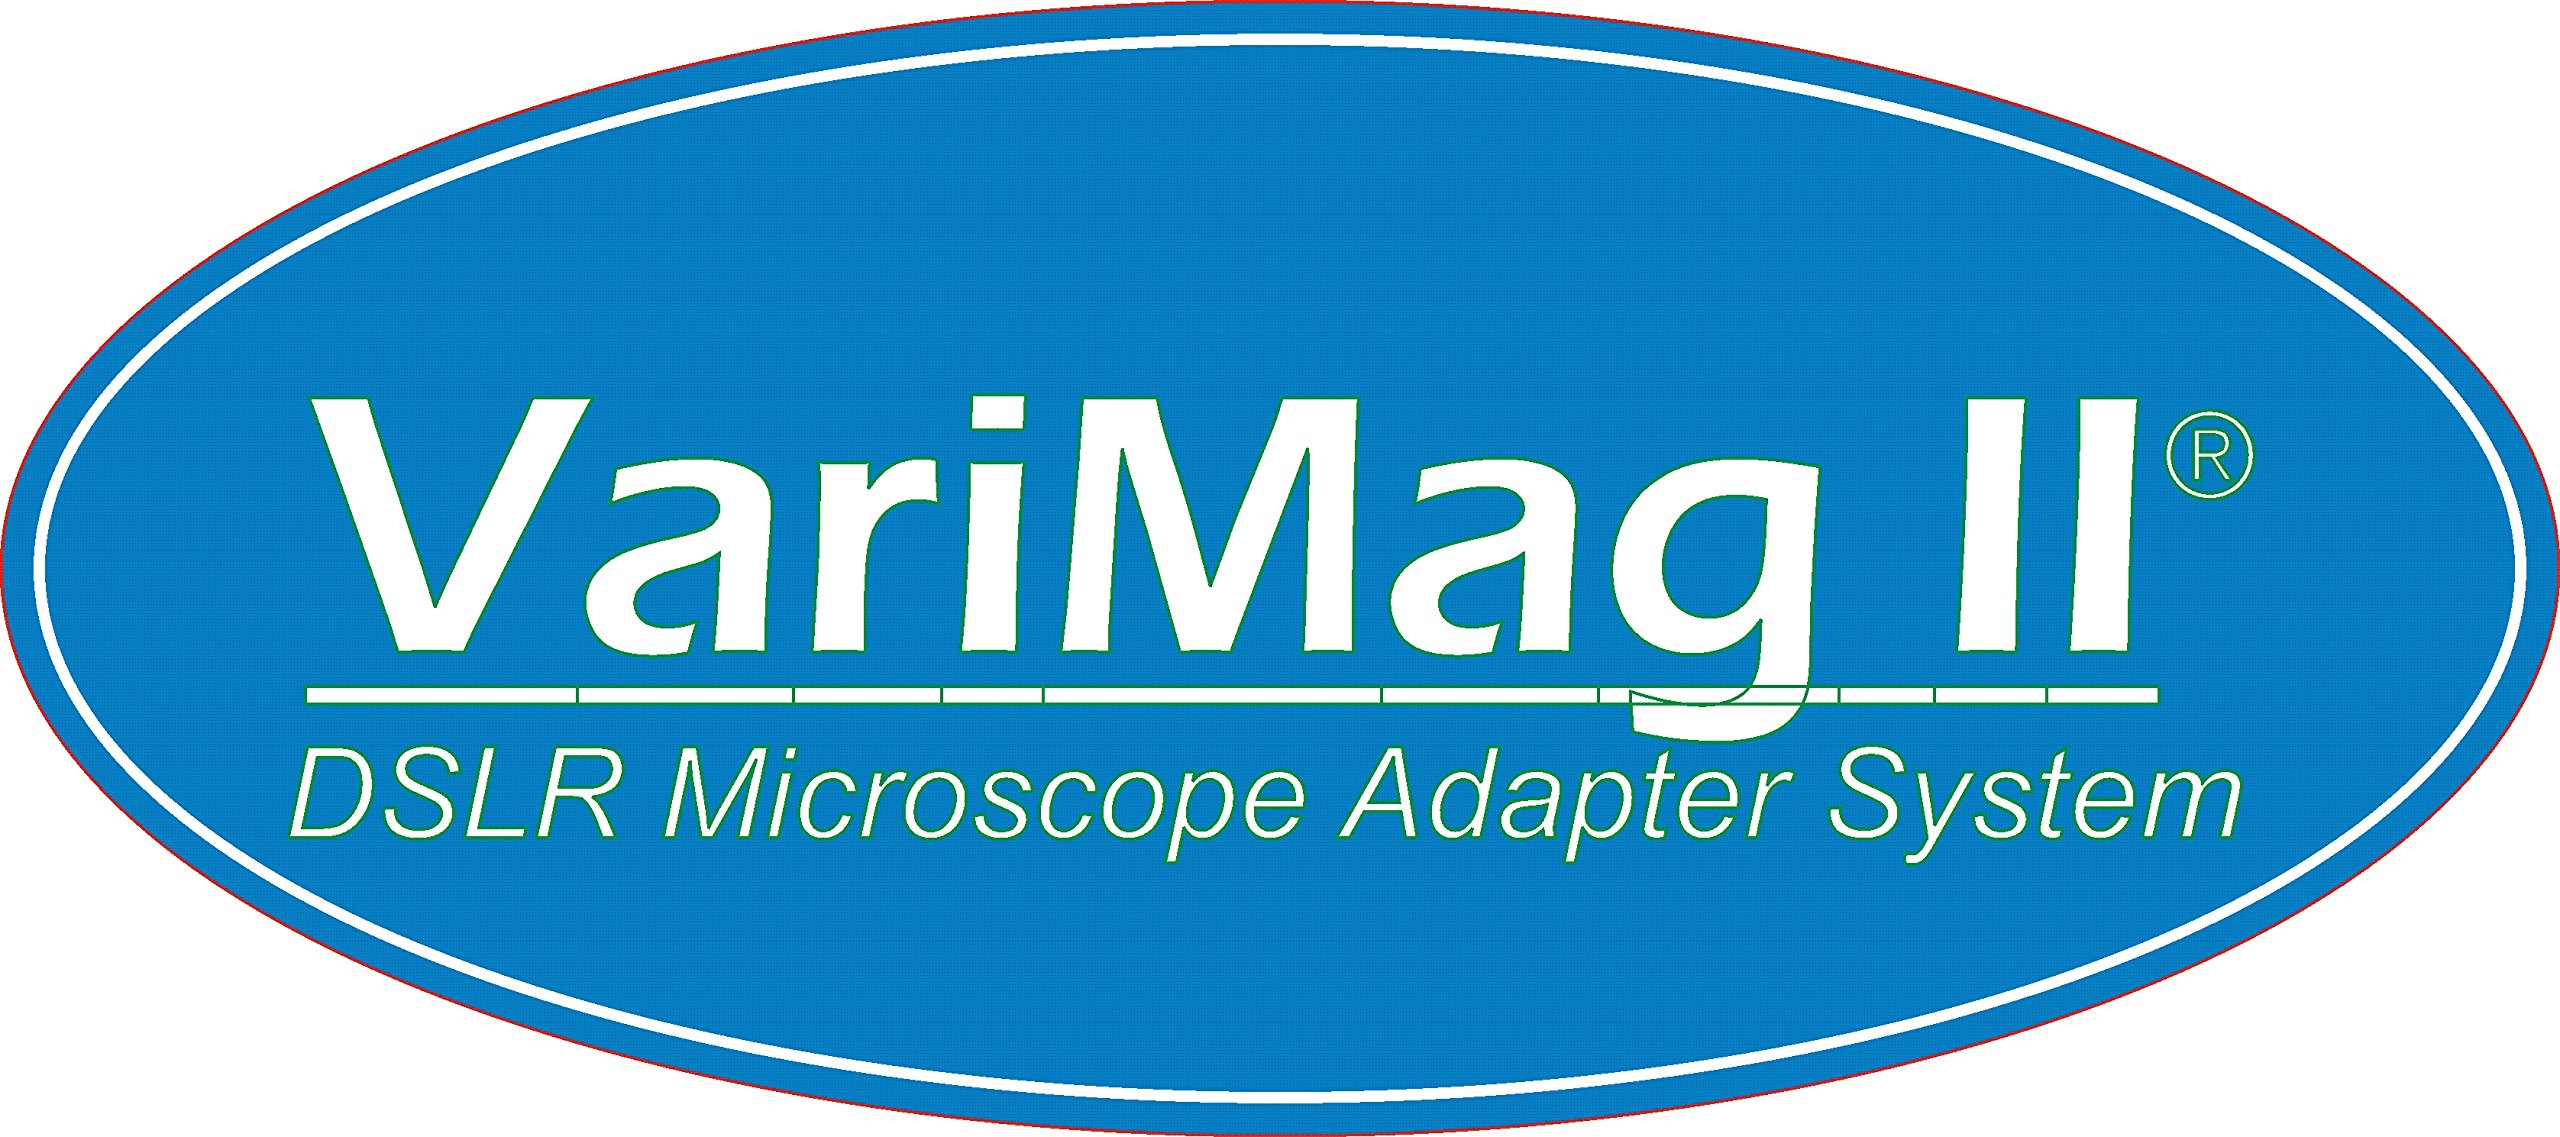 VariMag II Microscope Adapter for All Canon EOS/Rebel DSLR Cameras by Modern Photonics